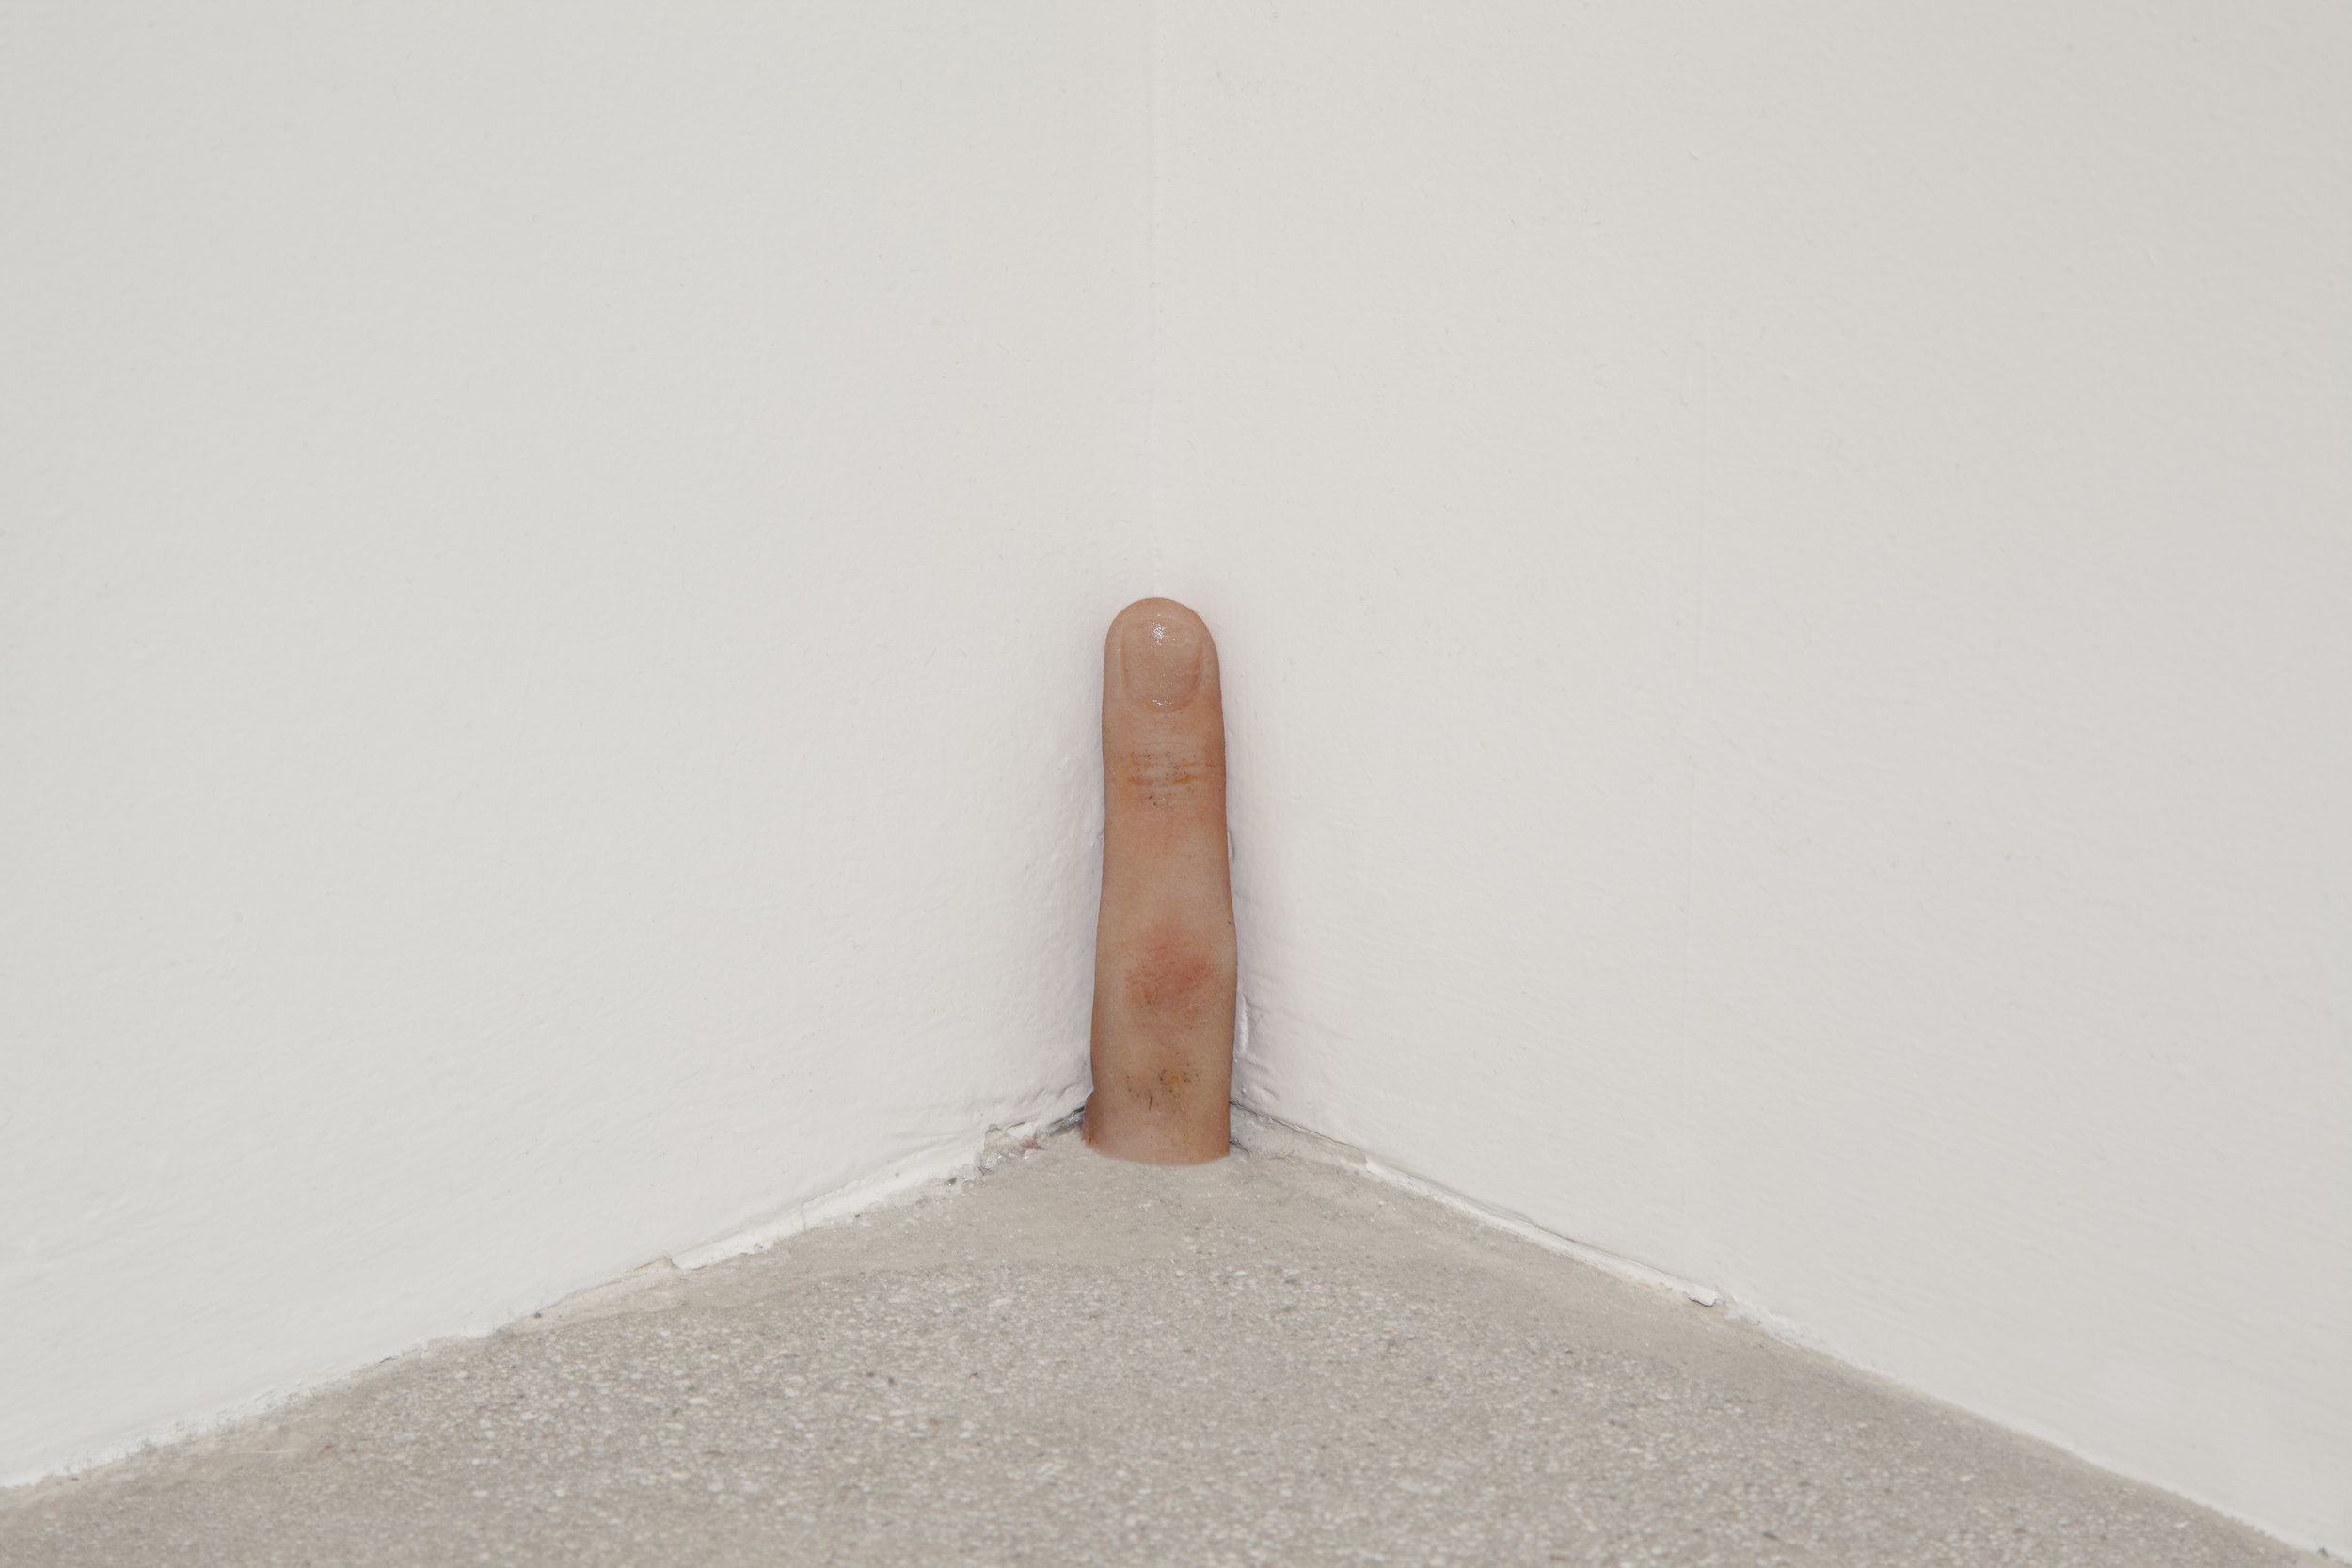 Shouting yelling pointing not listening ok,  2015, Pigmented Silicone, Nail polish, 3.5 x 1 in